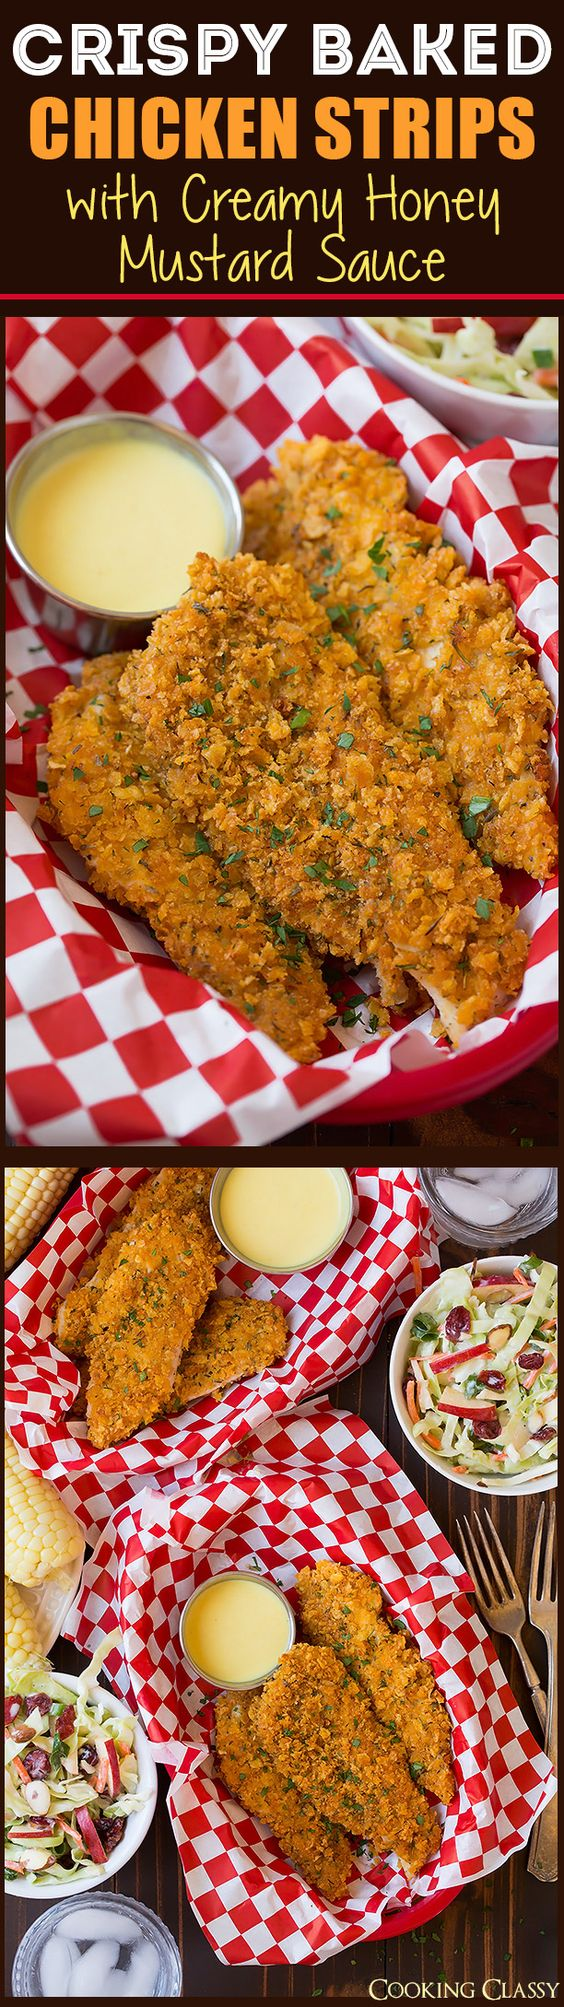 Crispy Baked Chicken Strips with Creamy Honey Mustard ...